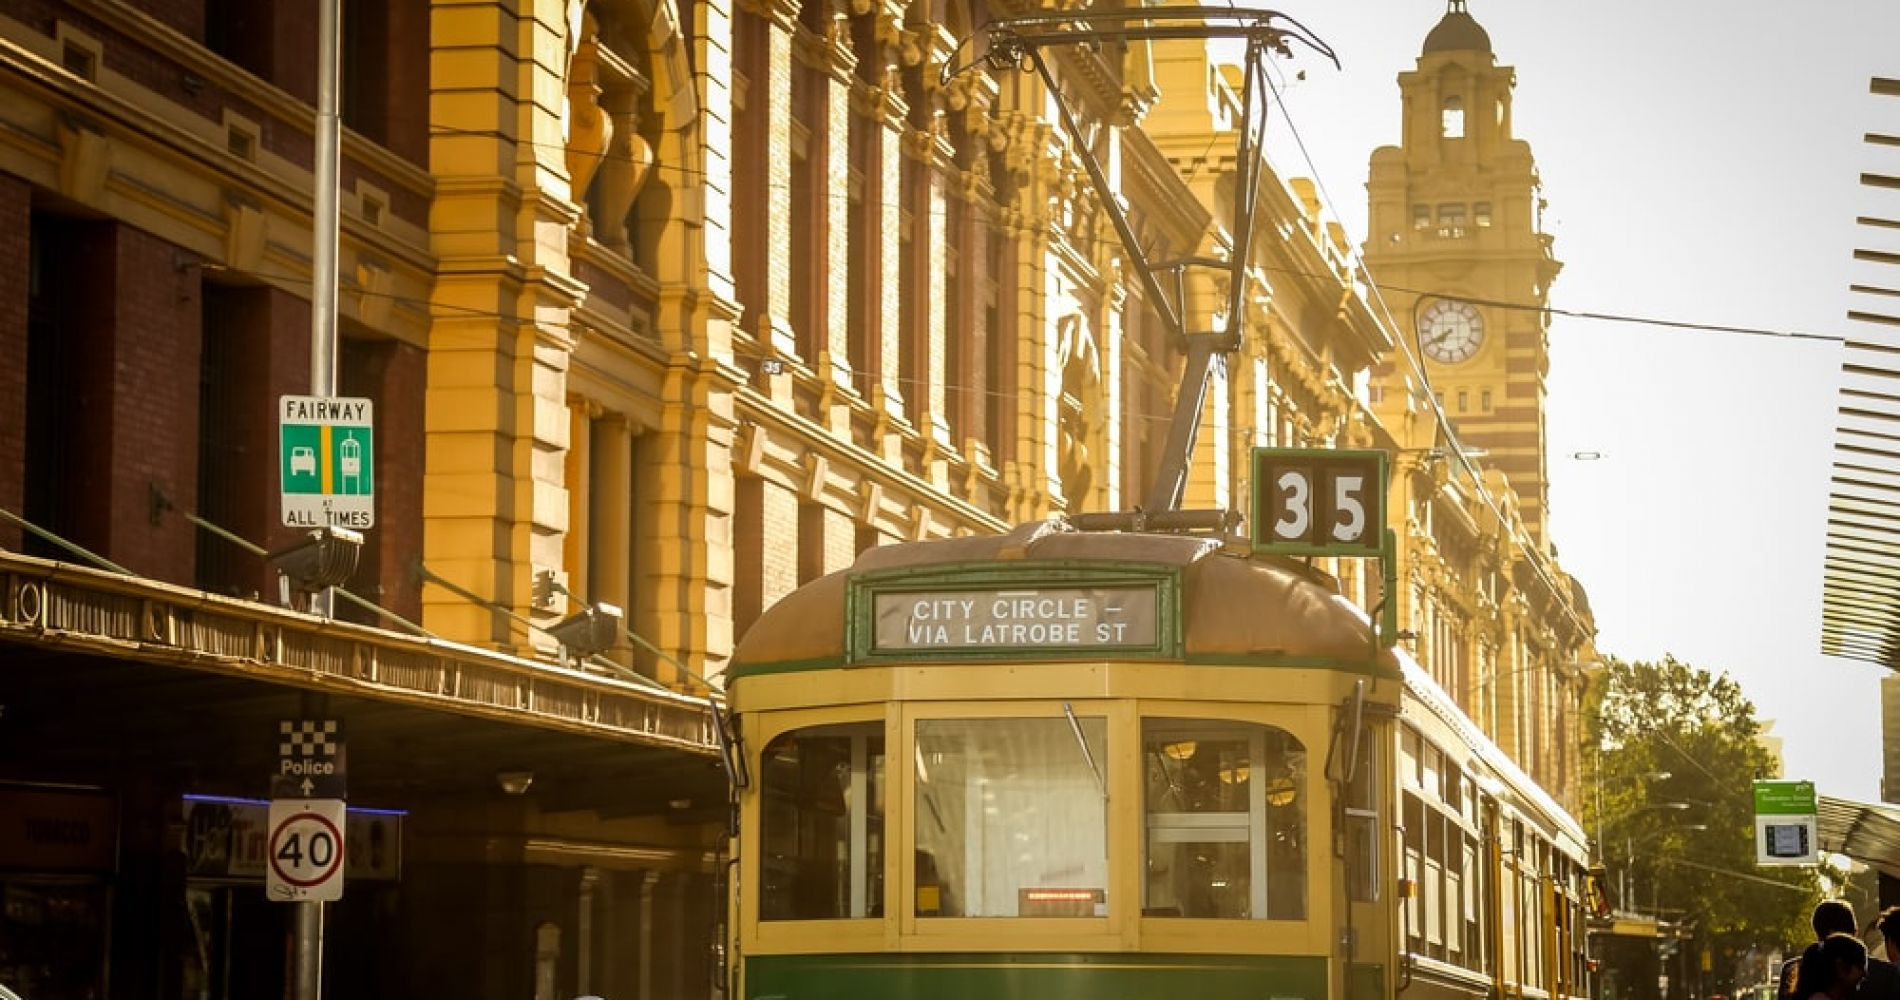 Hop on the free City Circle Tram in Melbourne